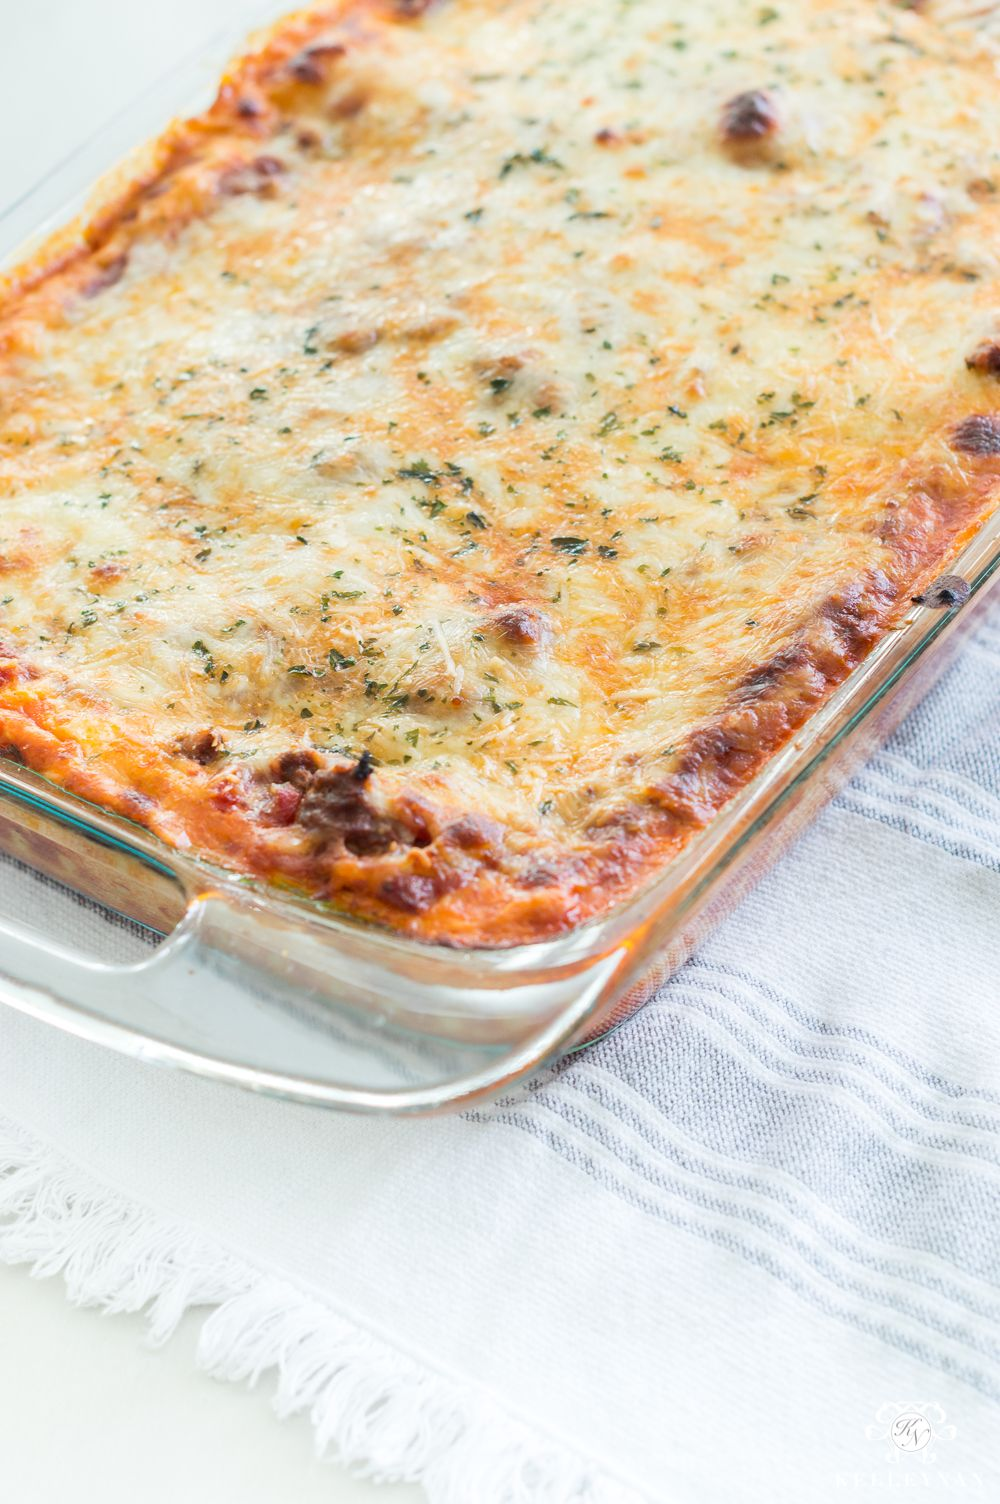 Simple Two Layer Lasagna That Only Bakes For 25 Minutes A Crown Pleasing Favorite Italian Dish Lasagna Recipe Ground Beef Recipes Easy Cheap Dinner Recipes